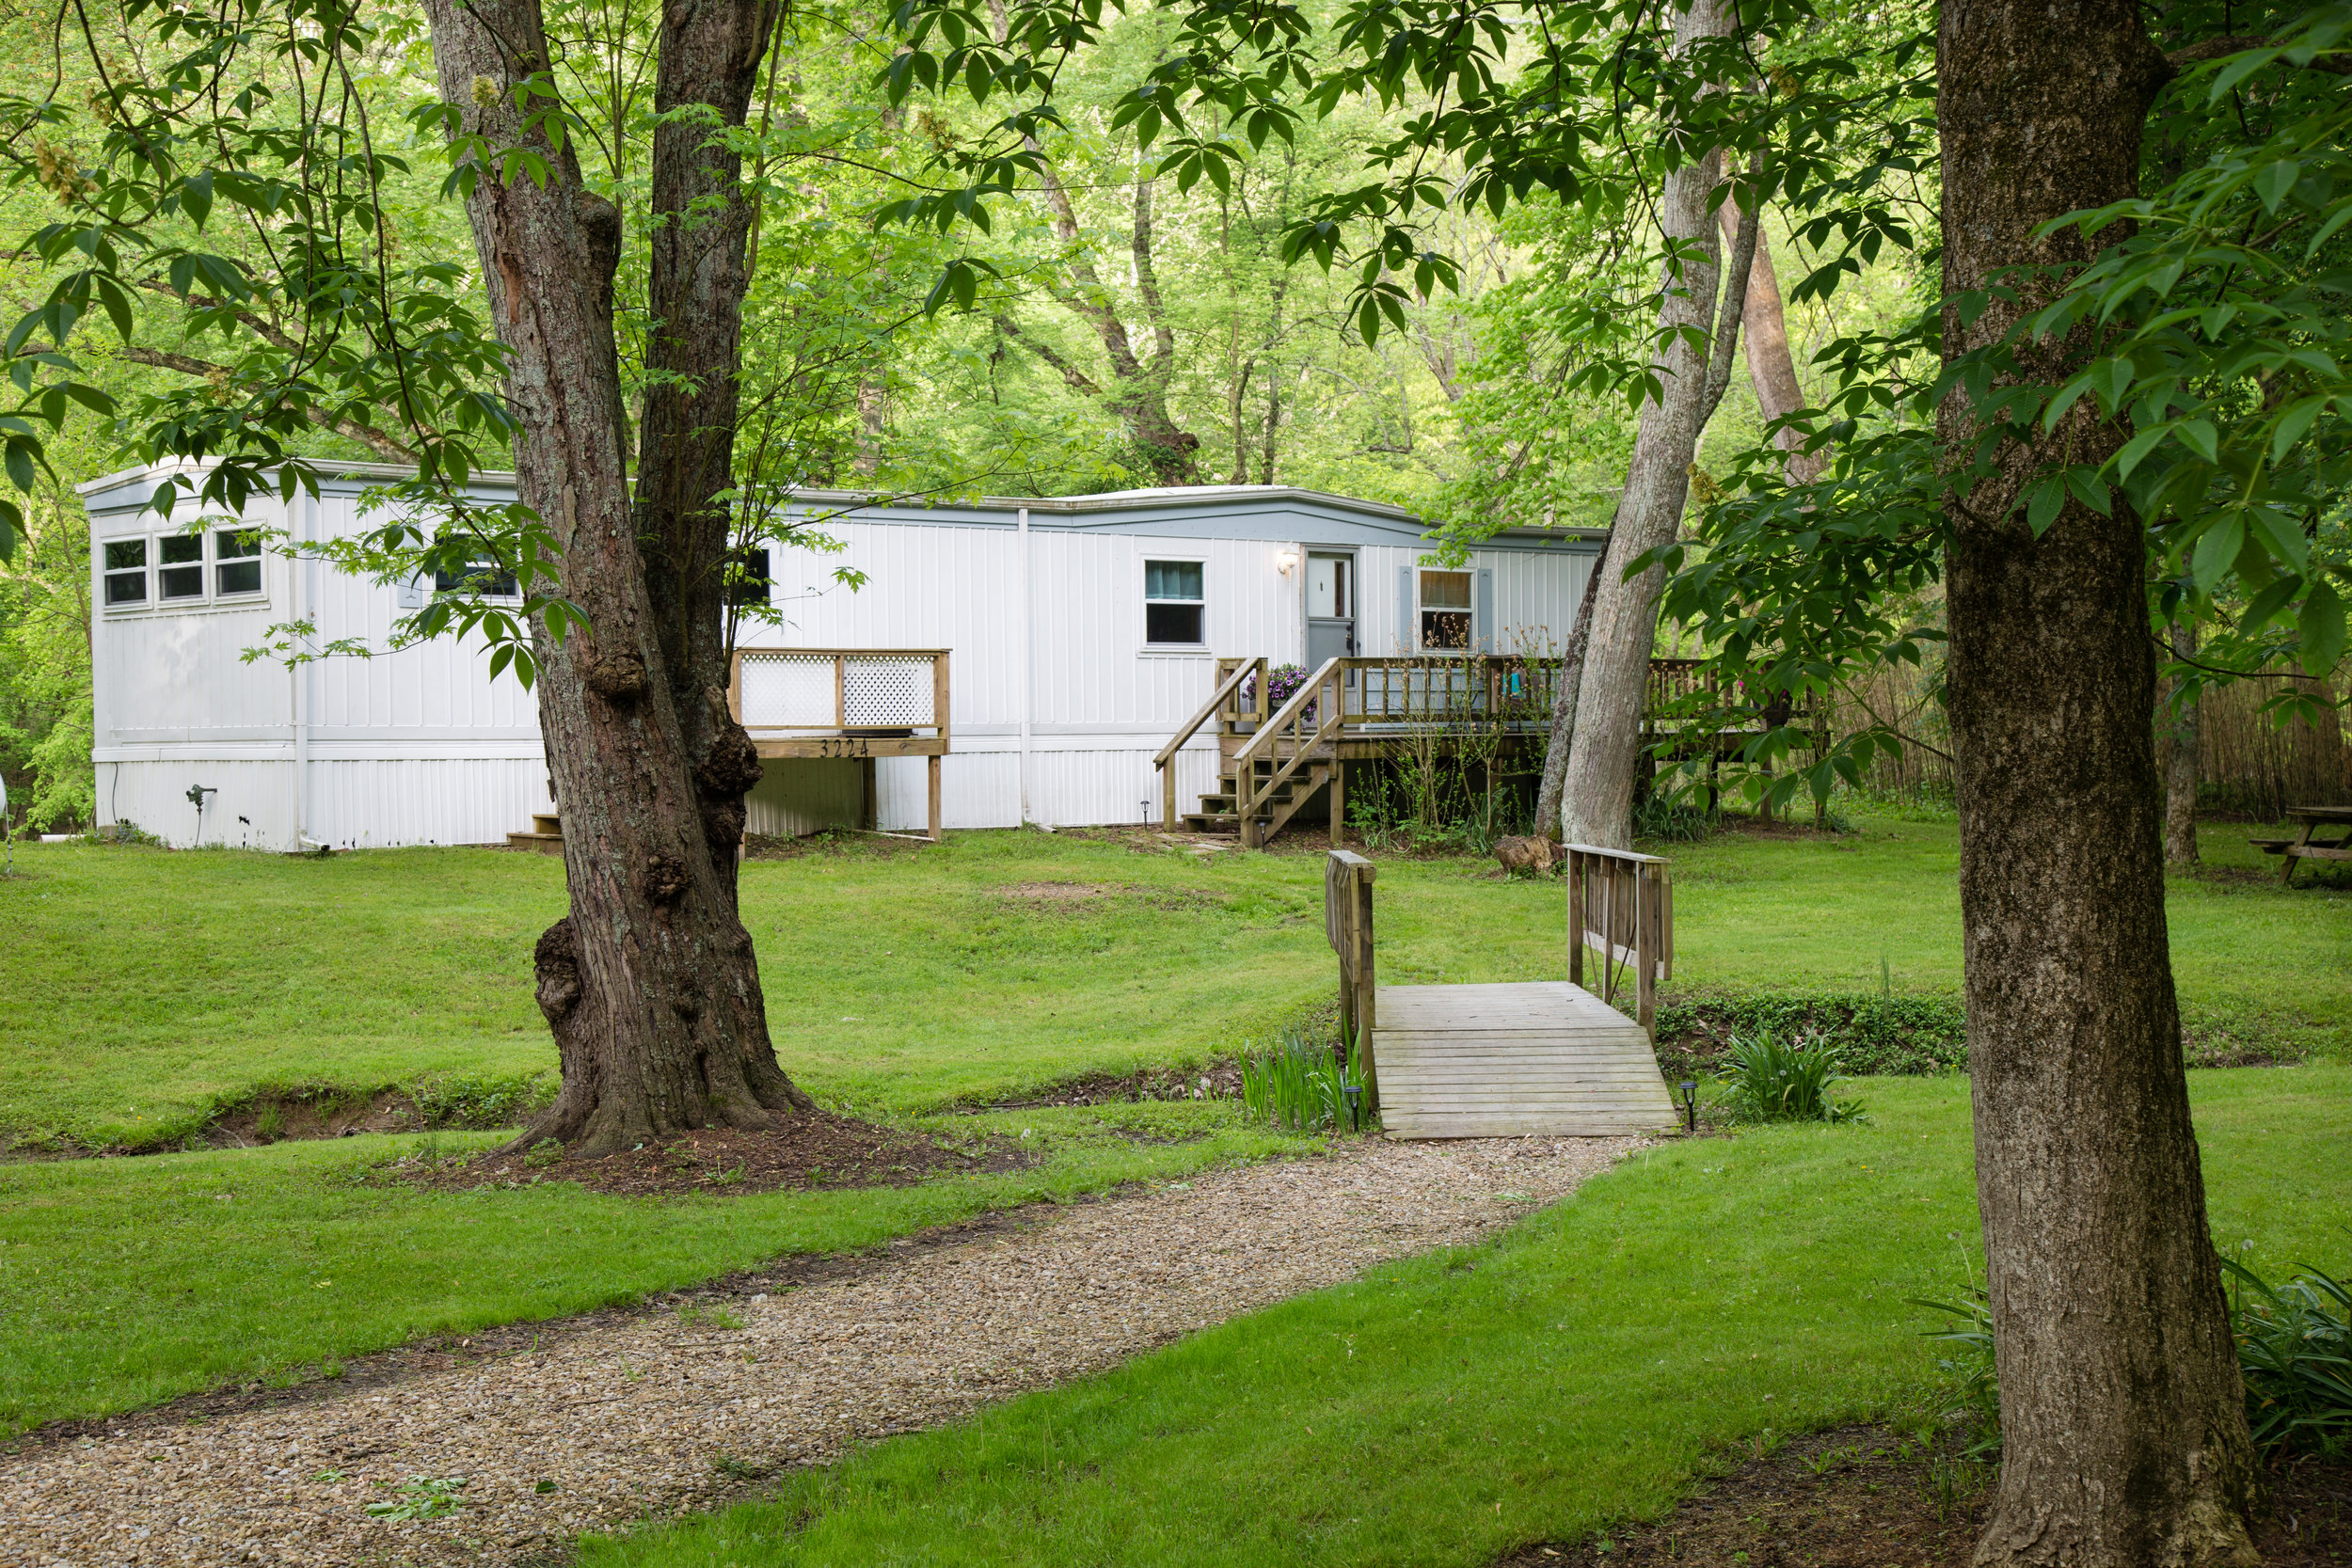 Riverside Vacation Rental - Loudonville